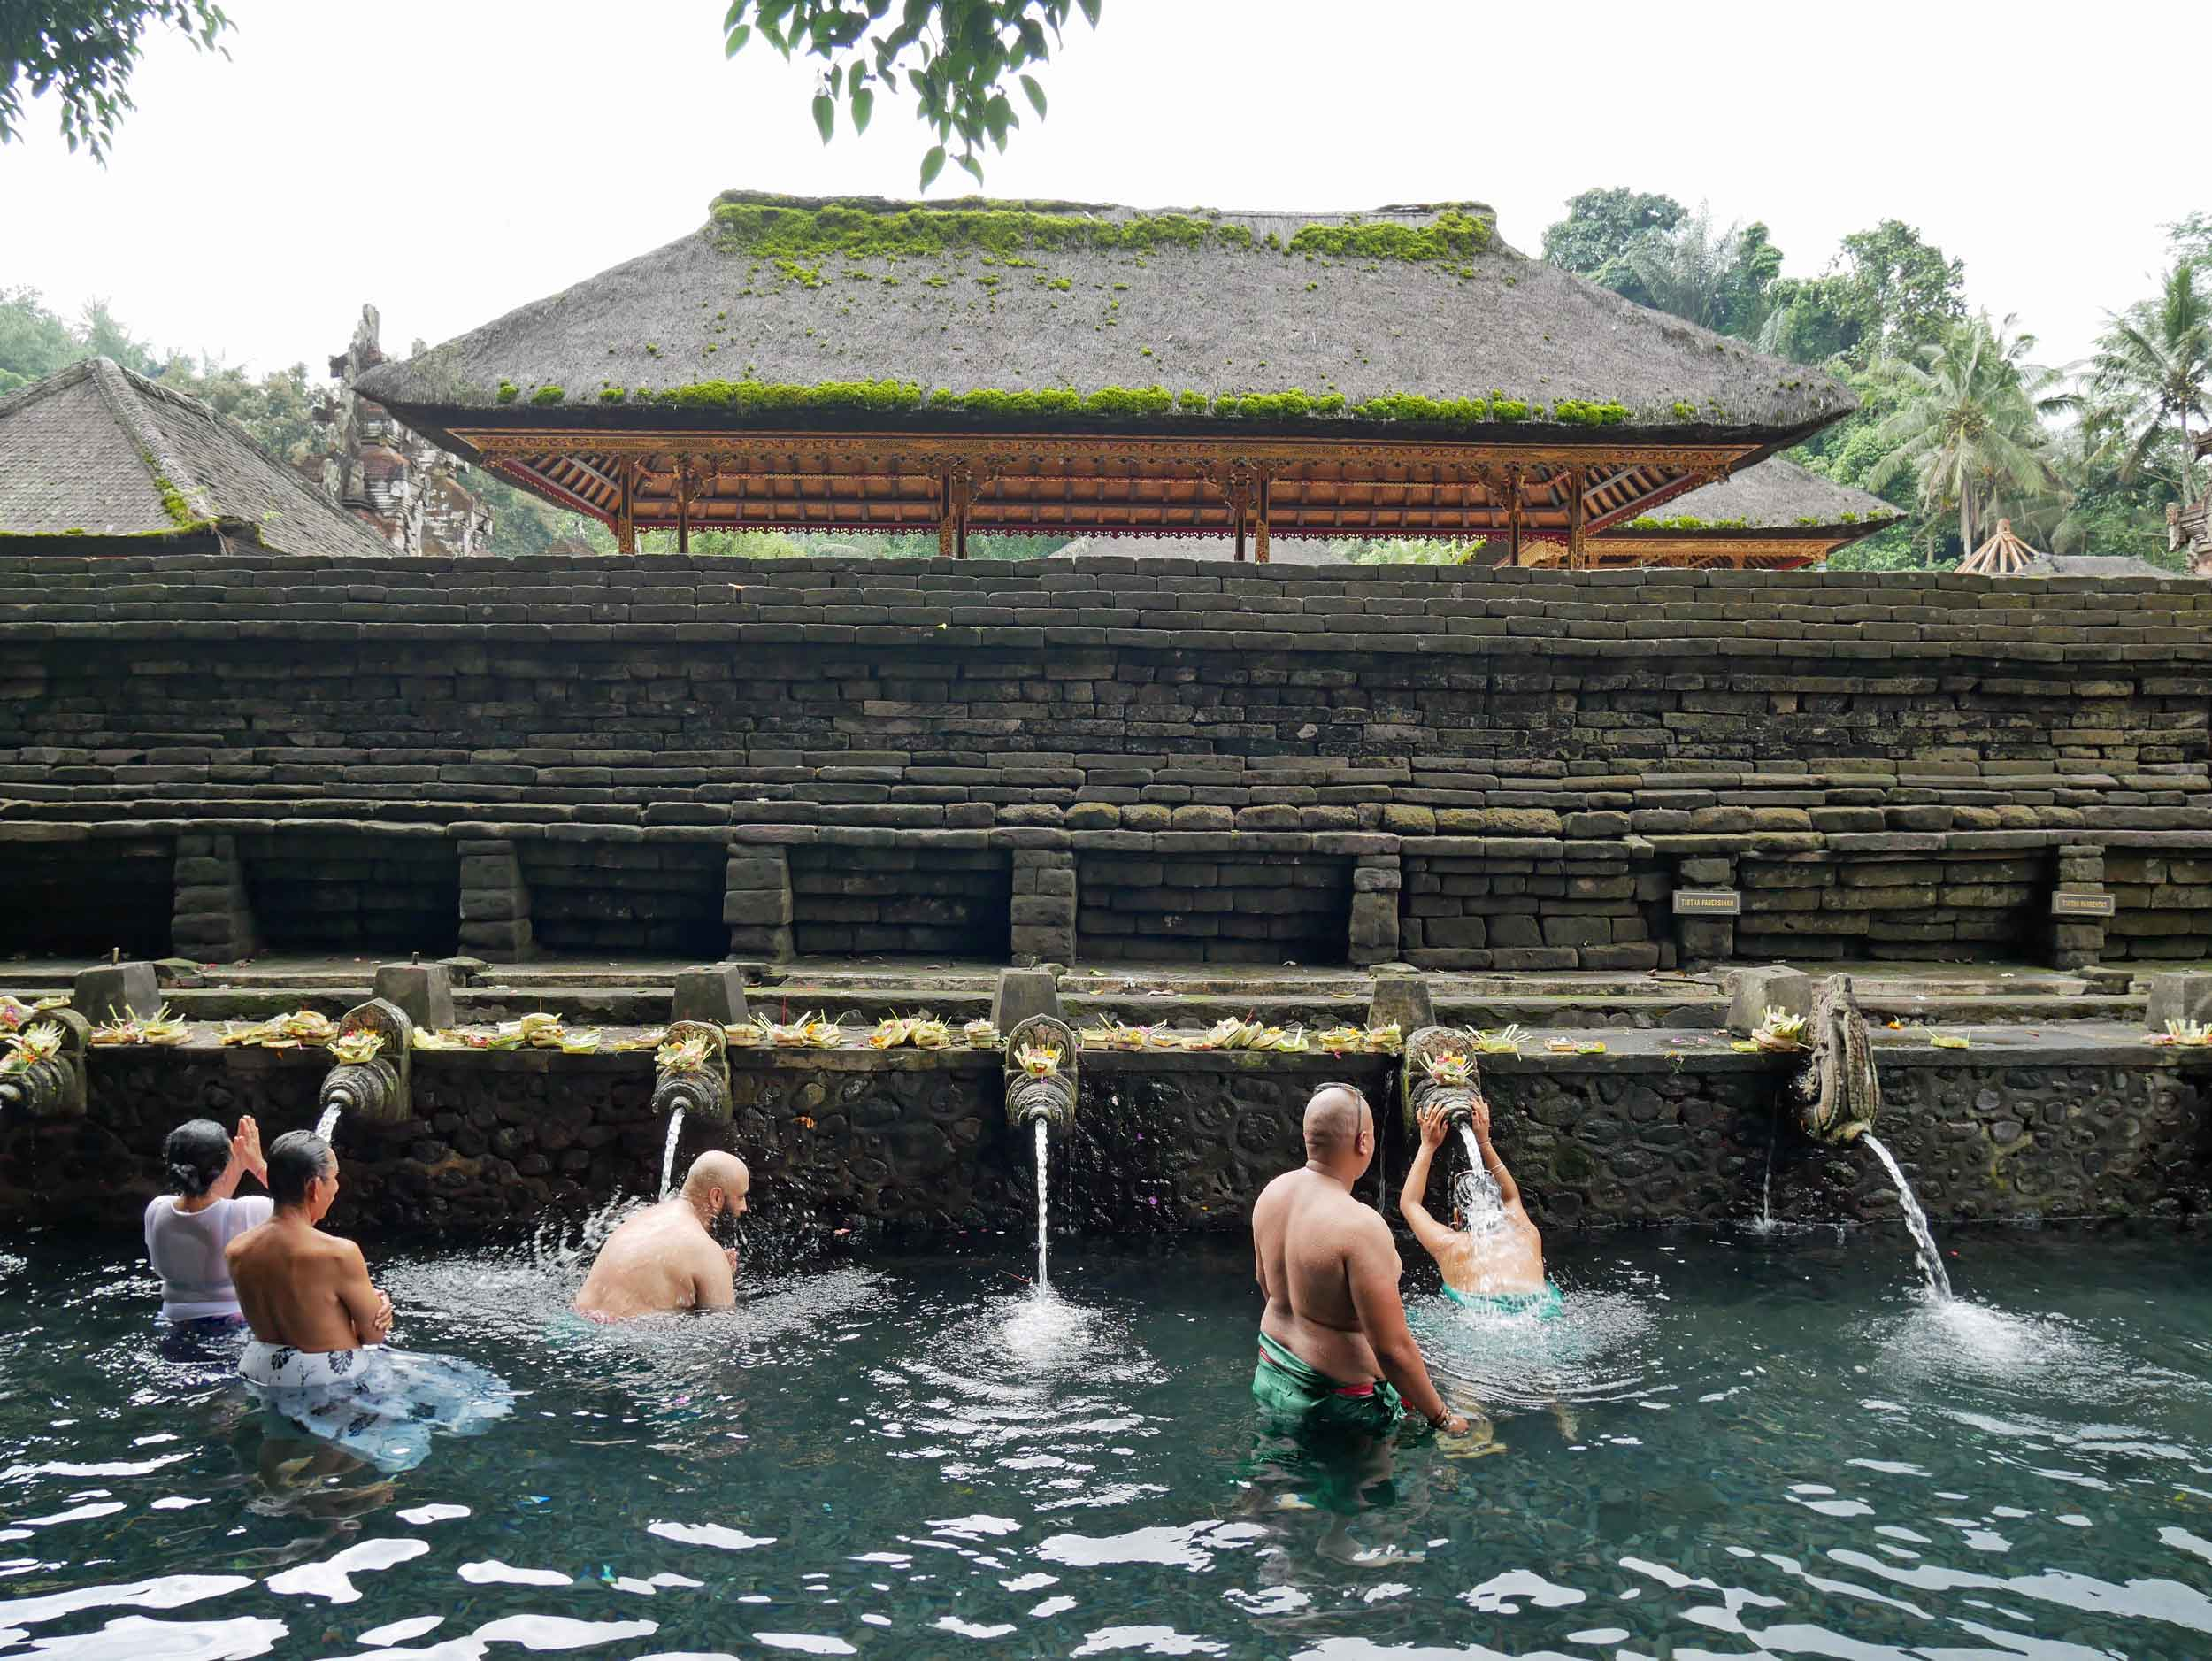 The temple is famous for its sacred bathing pool, where Balinese Hindus come for ritual purifcation in the spring water.